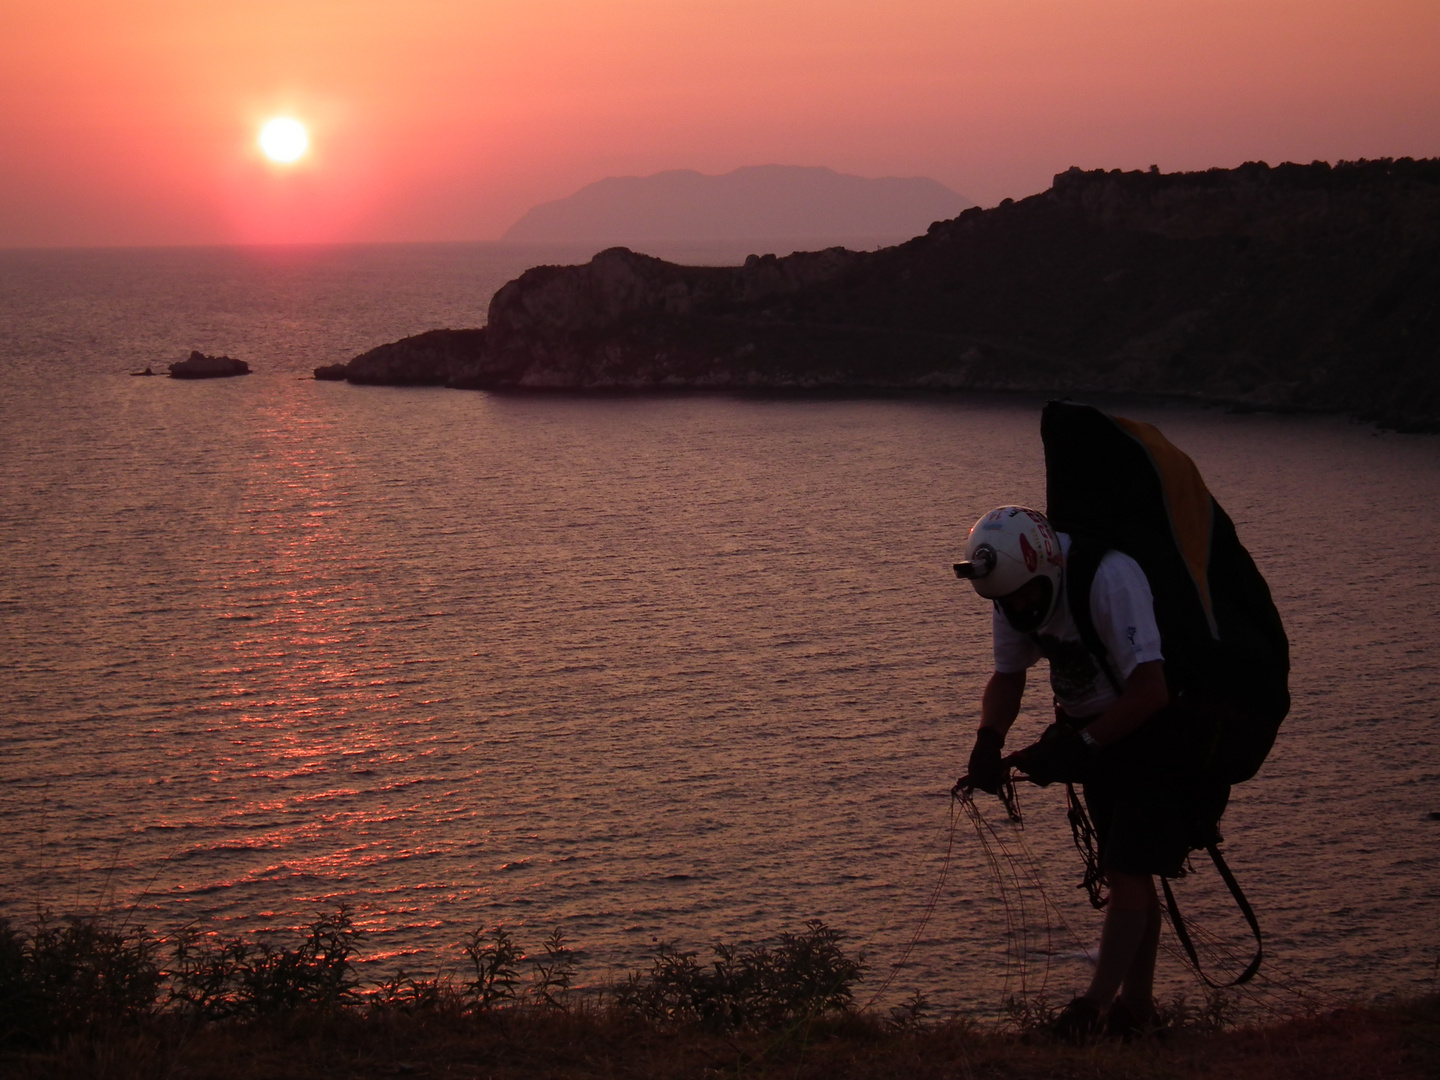 Preparation for launch at sunset of Capo Milazzo